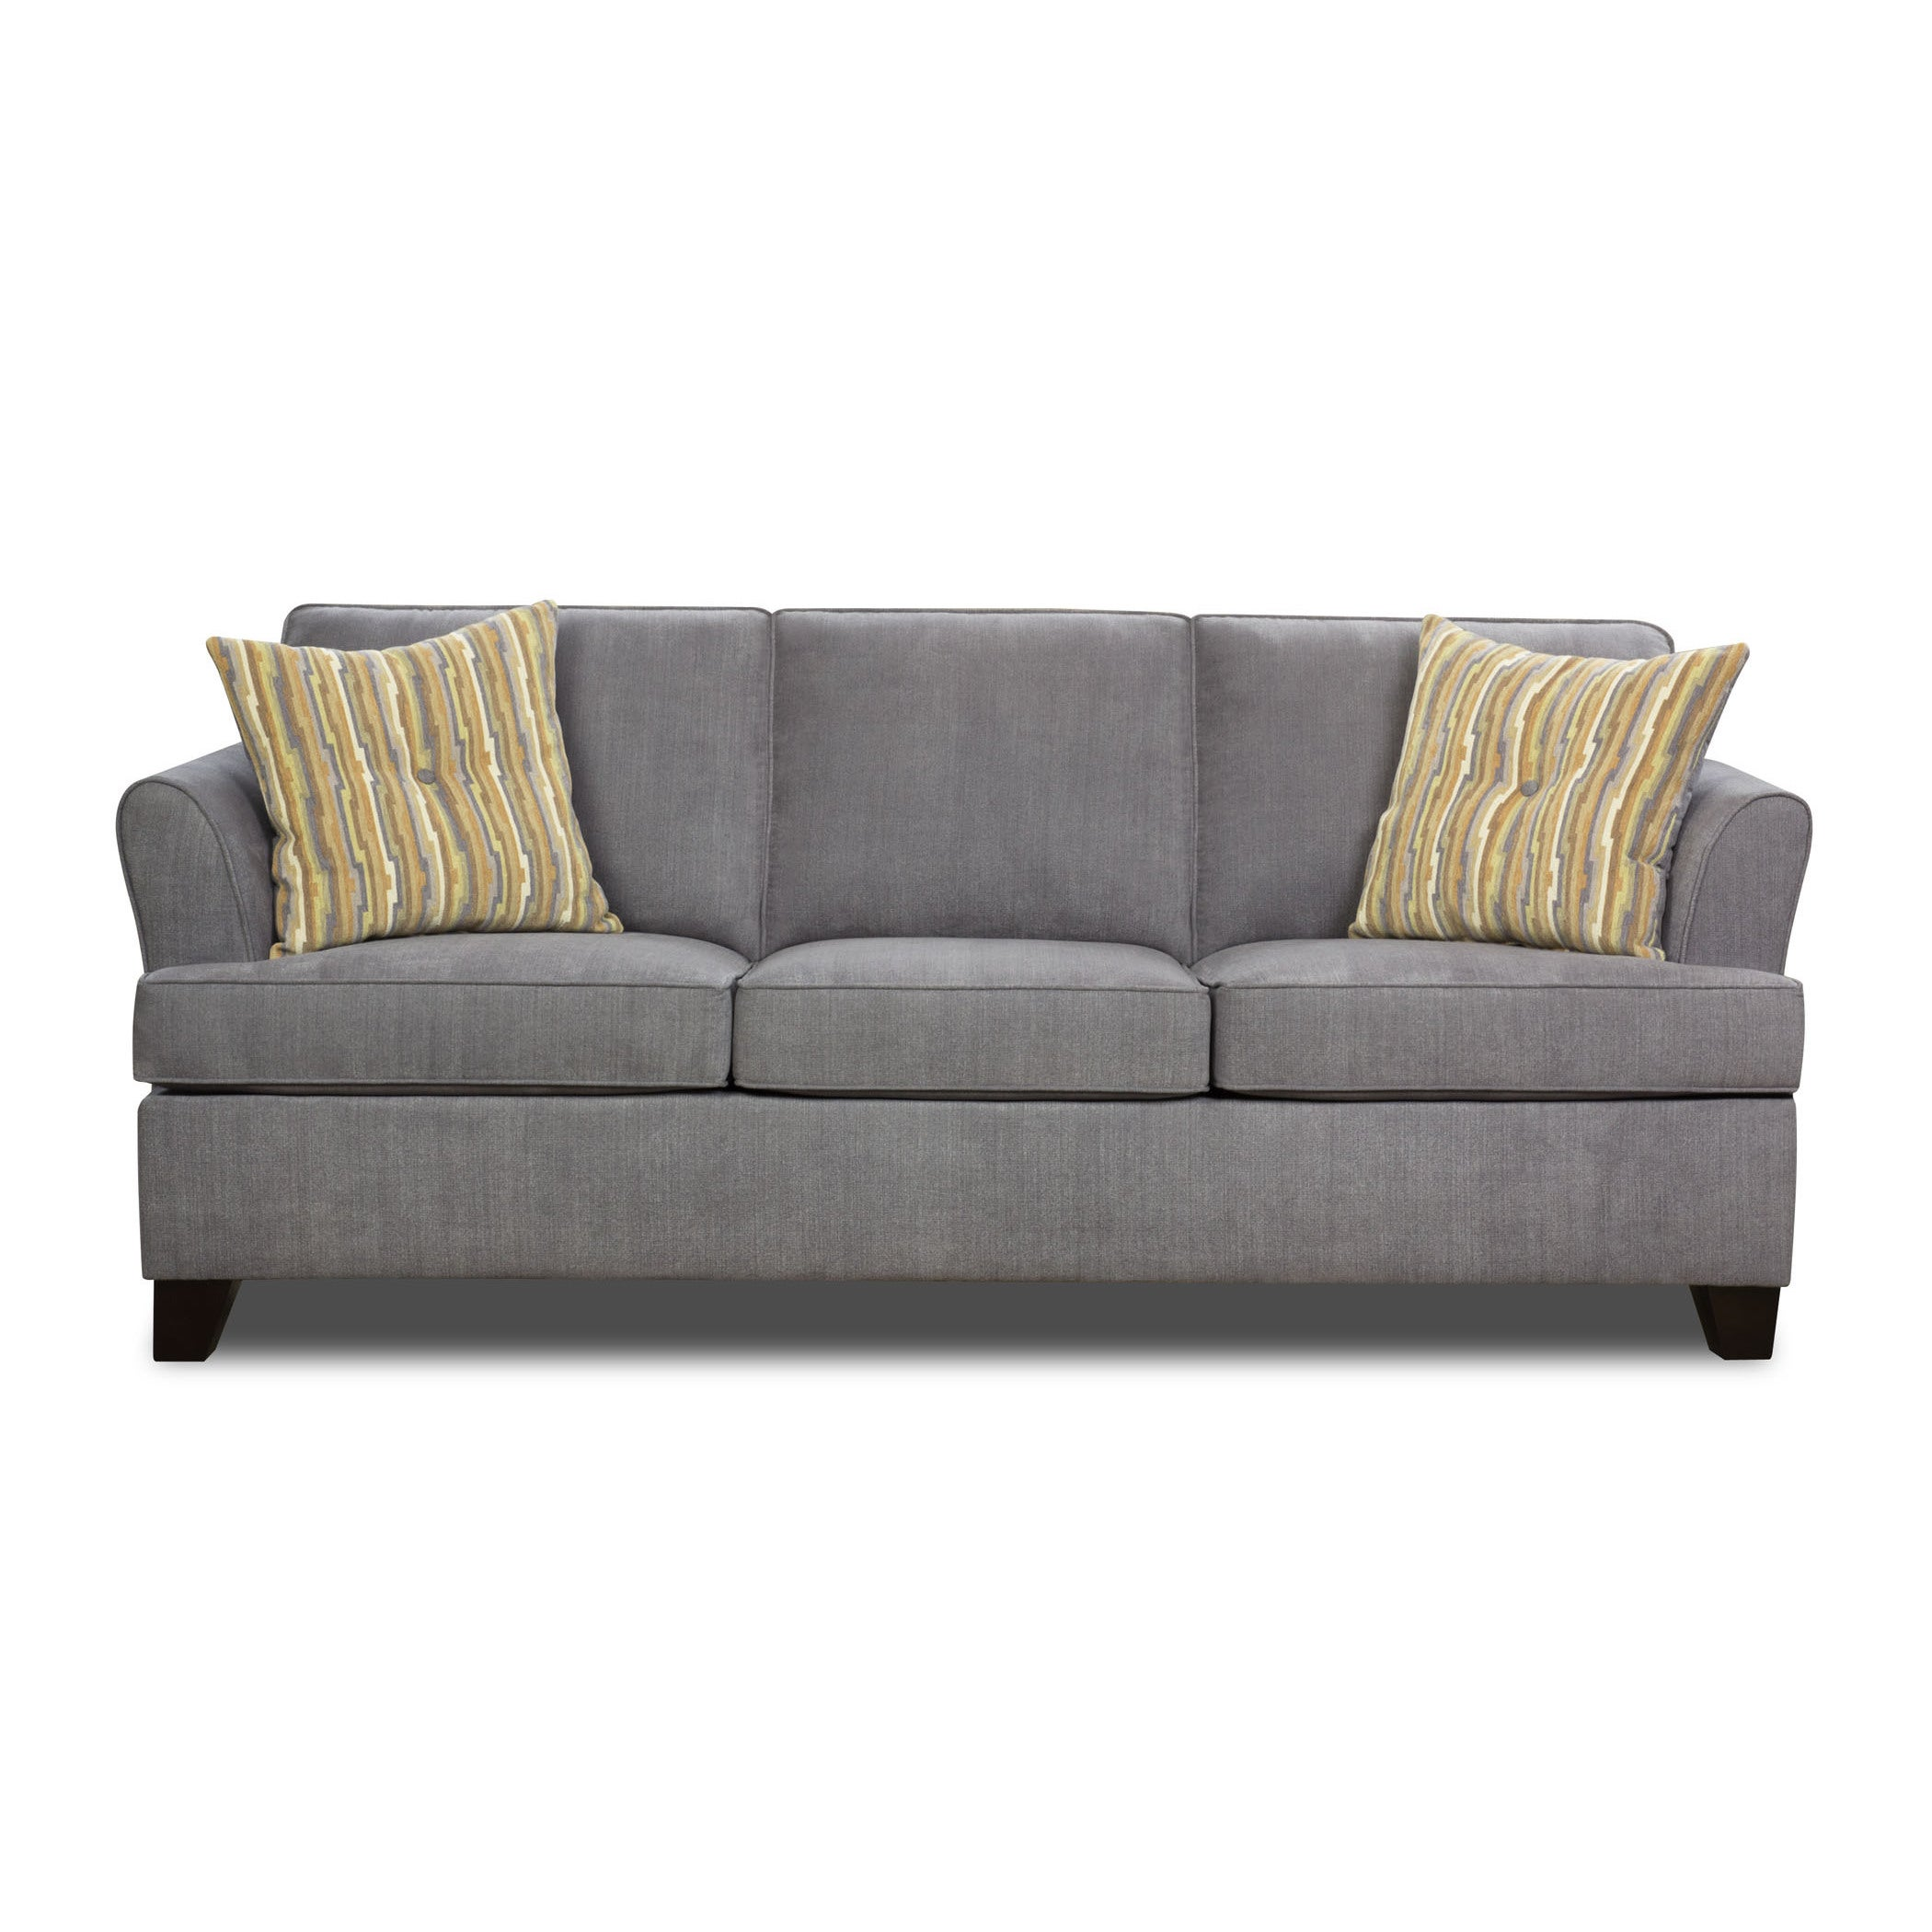 with number serta hughes hide item loveseat furniture bed upholstery arms beige english by orion a products transitional